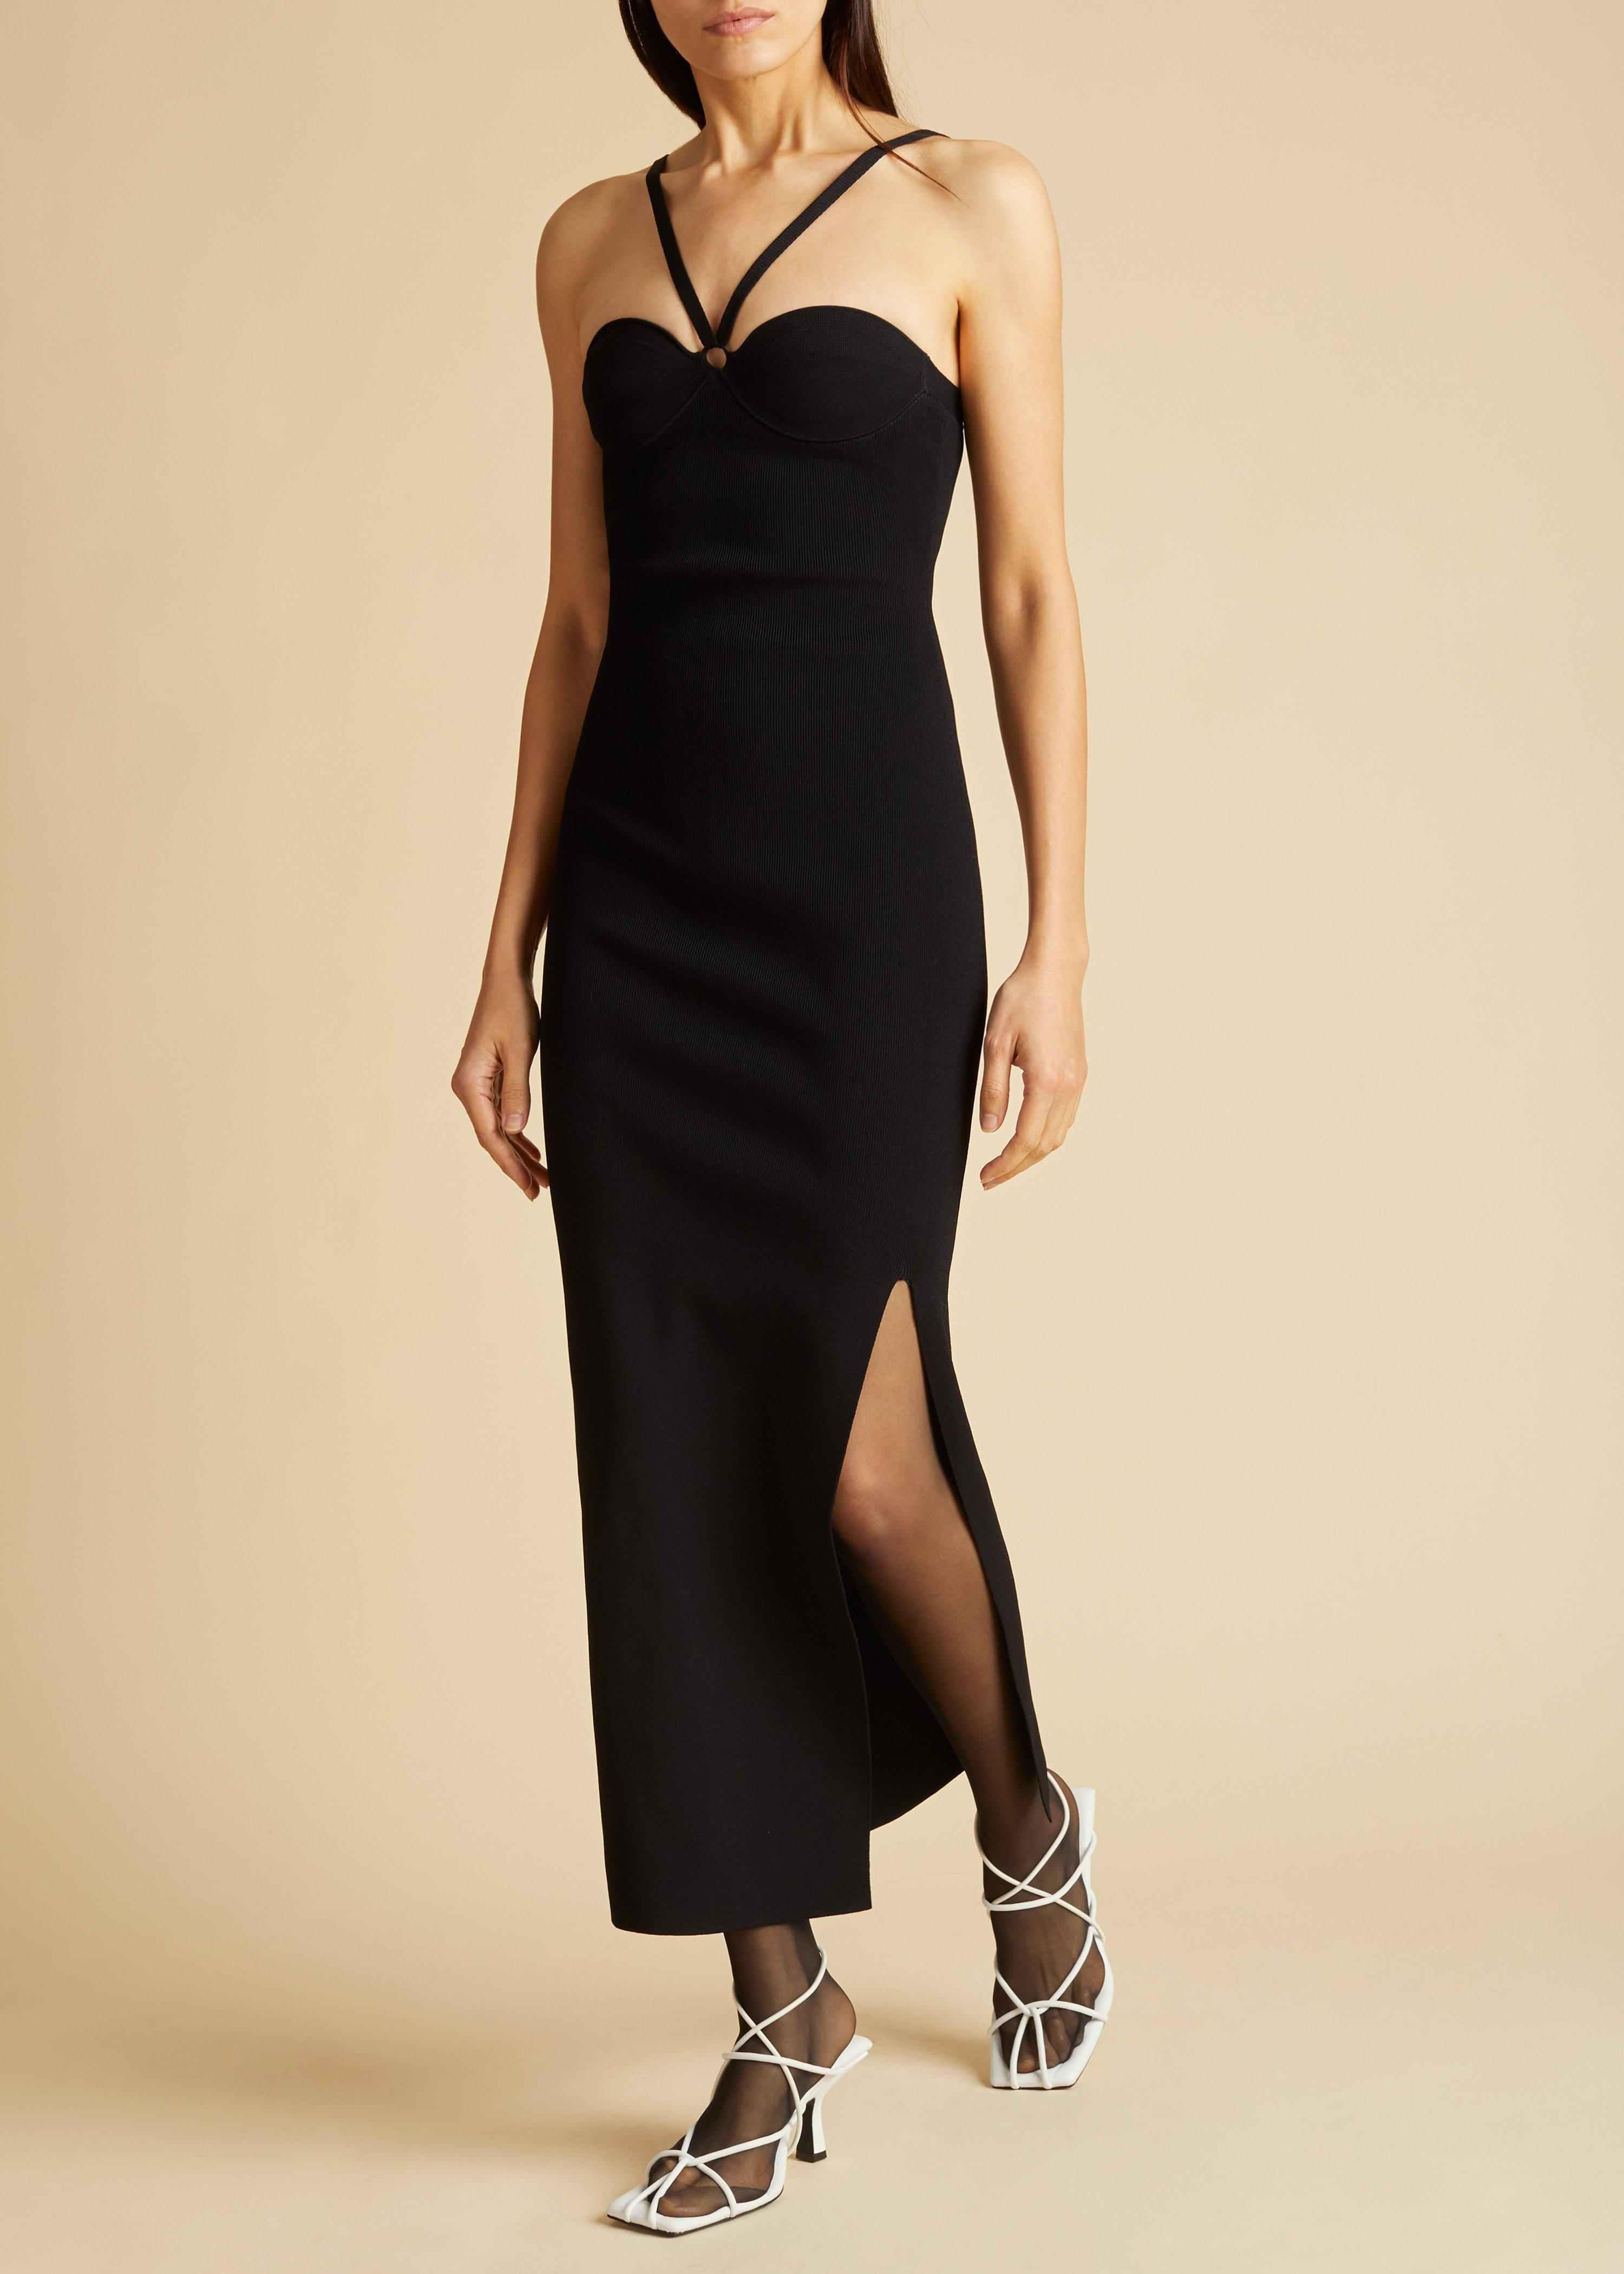 The Mayra Dress in Black